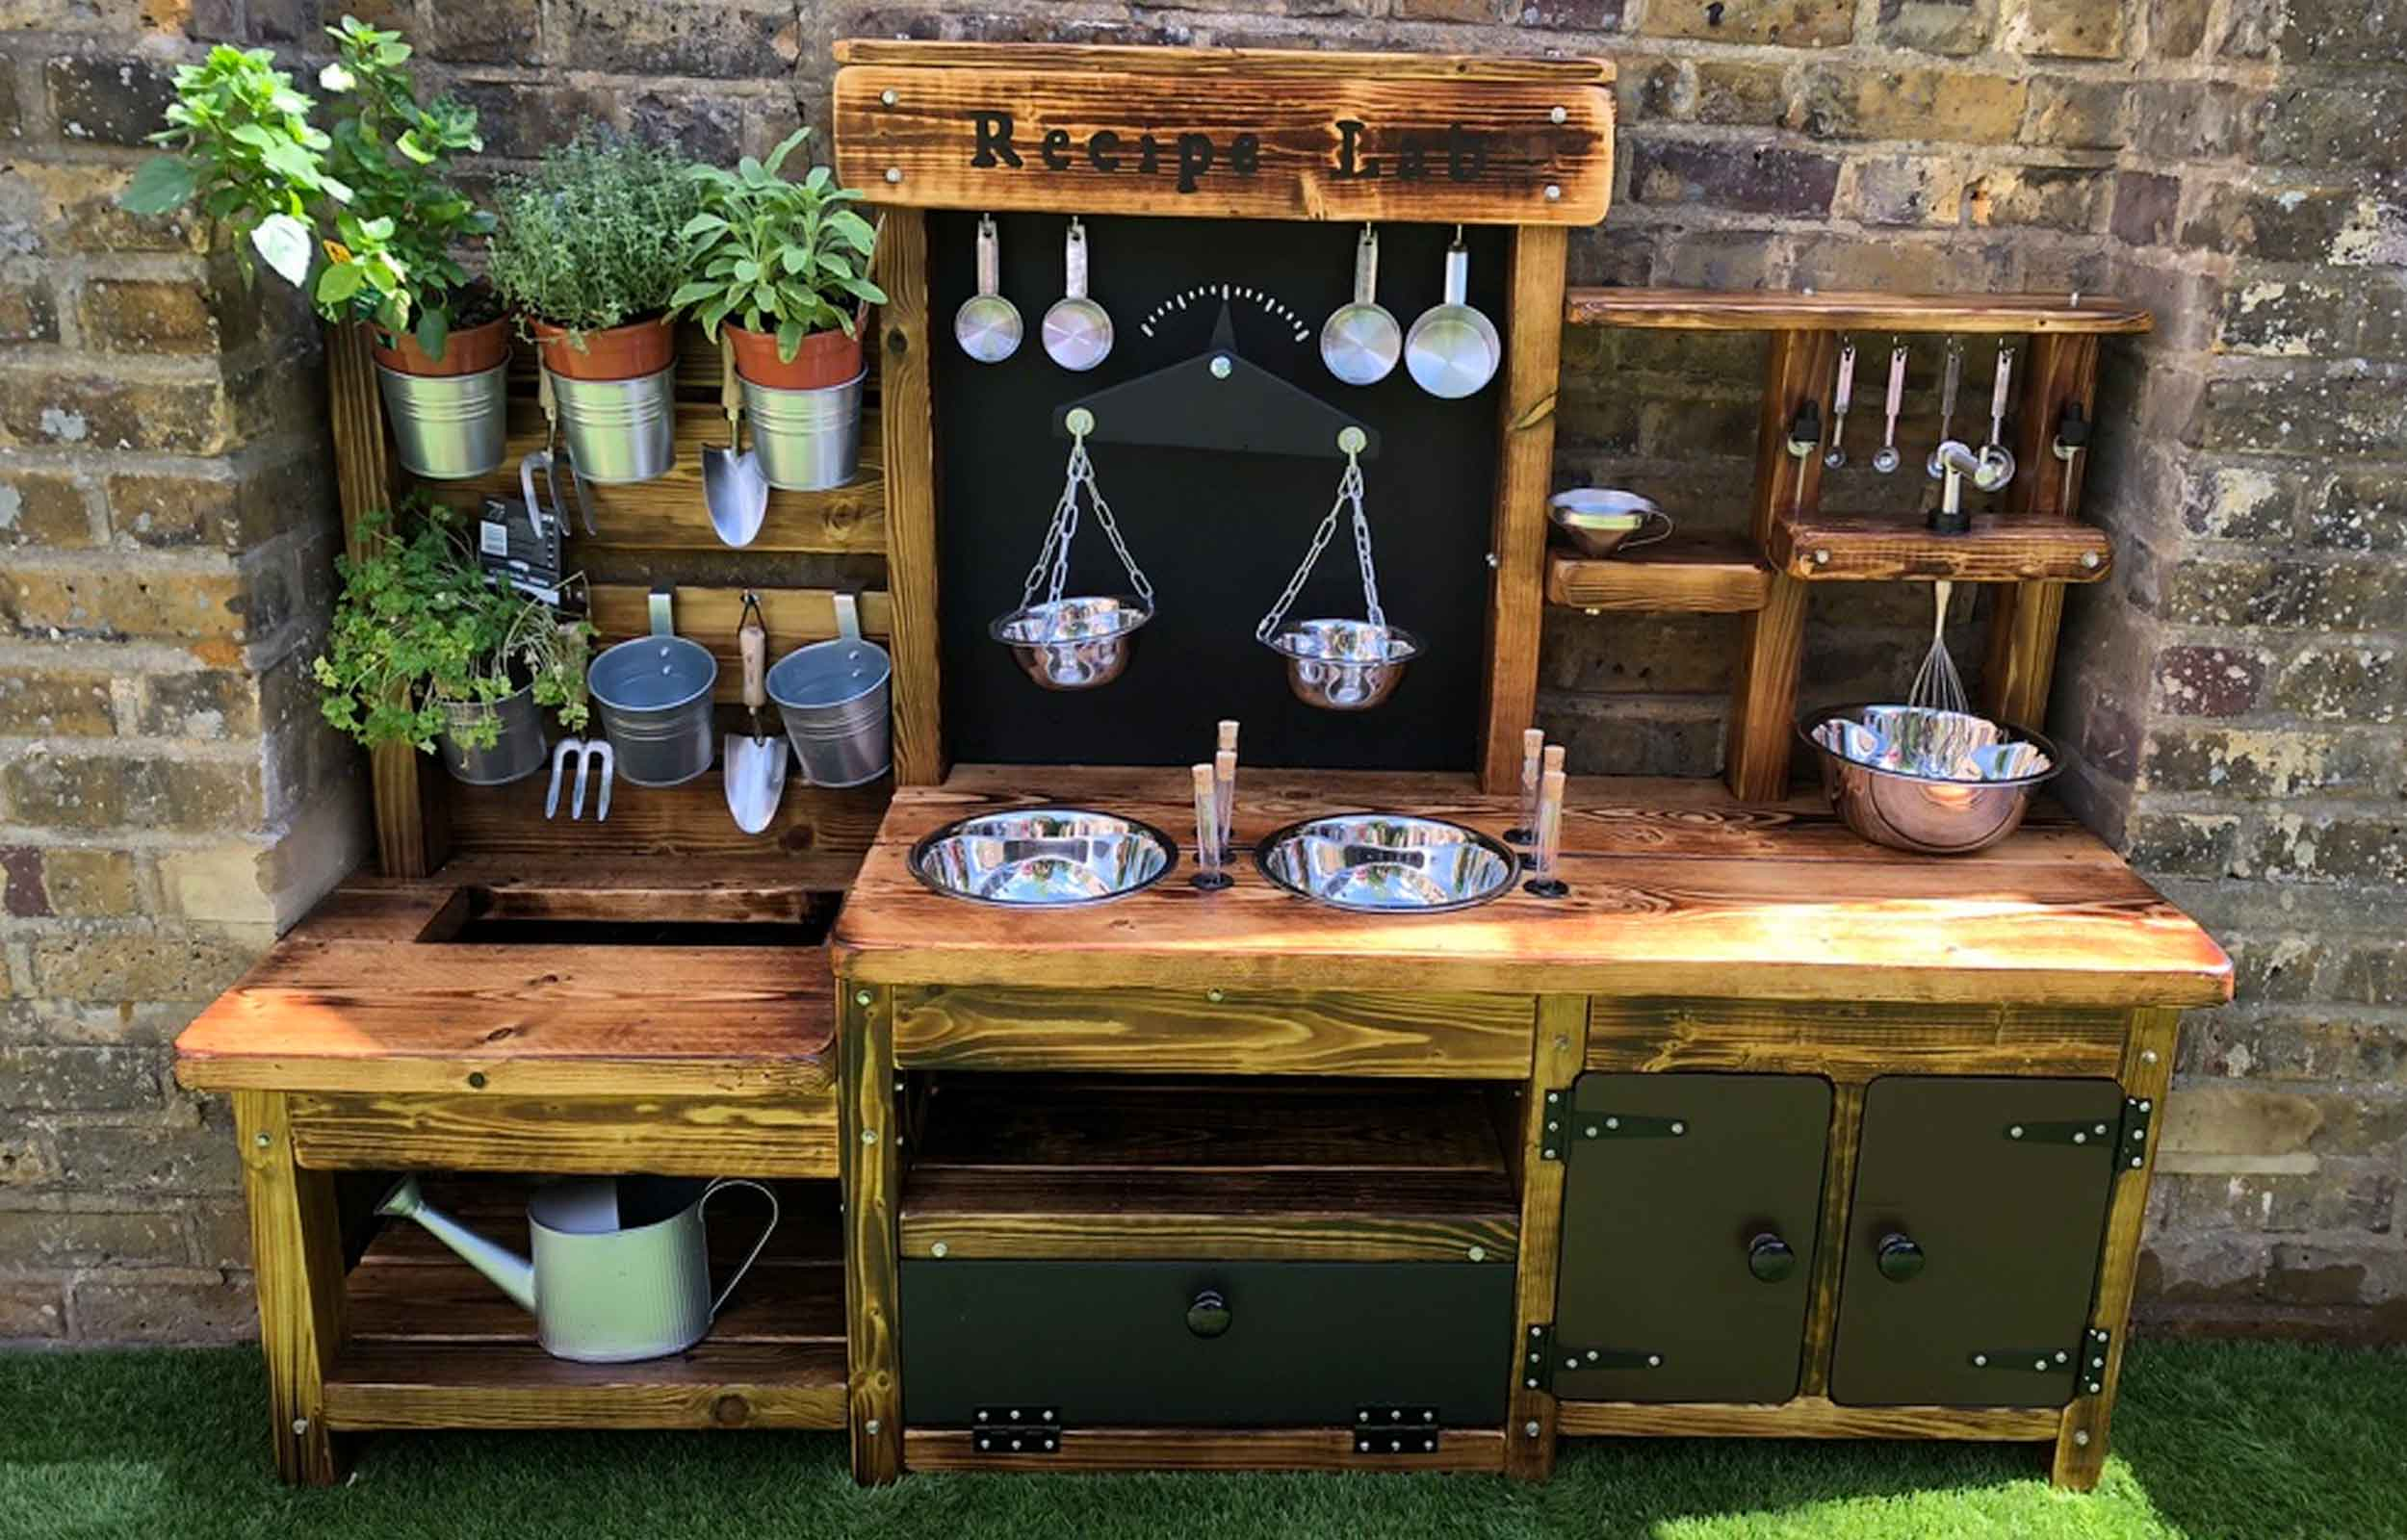 mud-kitchen-recipe-lab